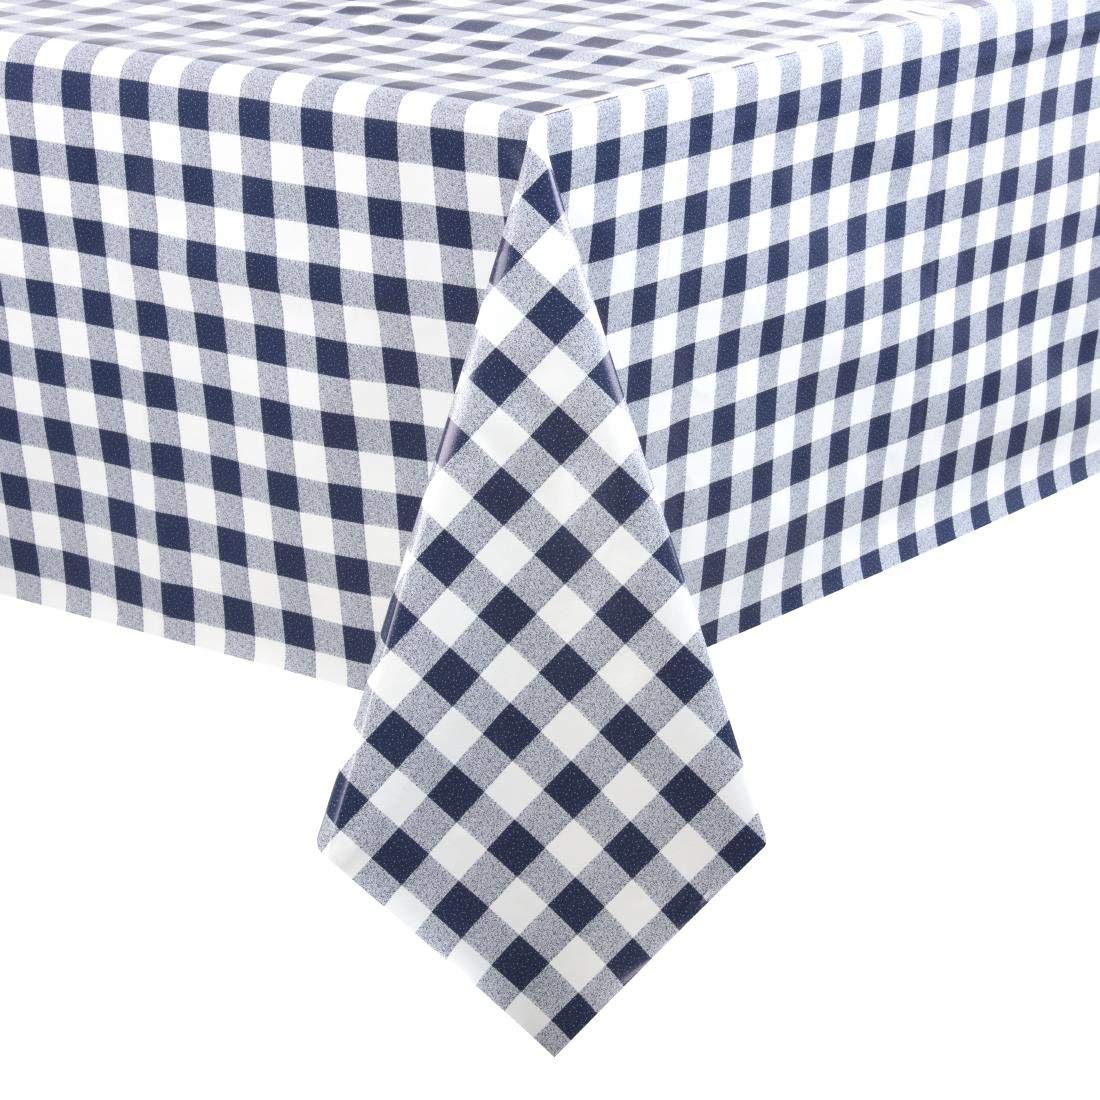 Blue Check Tablecloth 1400X2300mm Tablecover Oilcloth Restaurant PVC